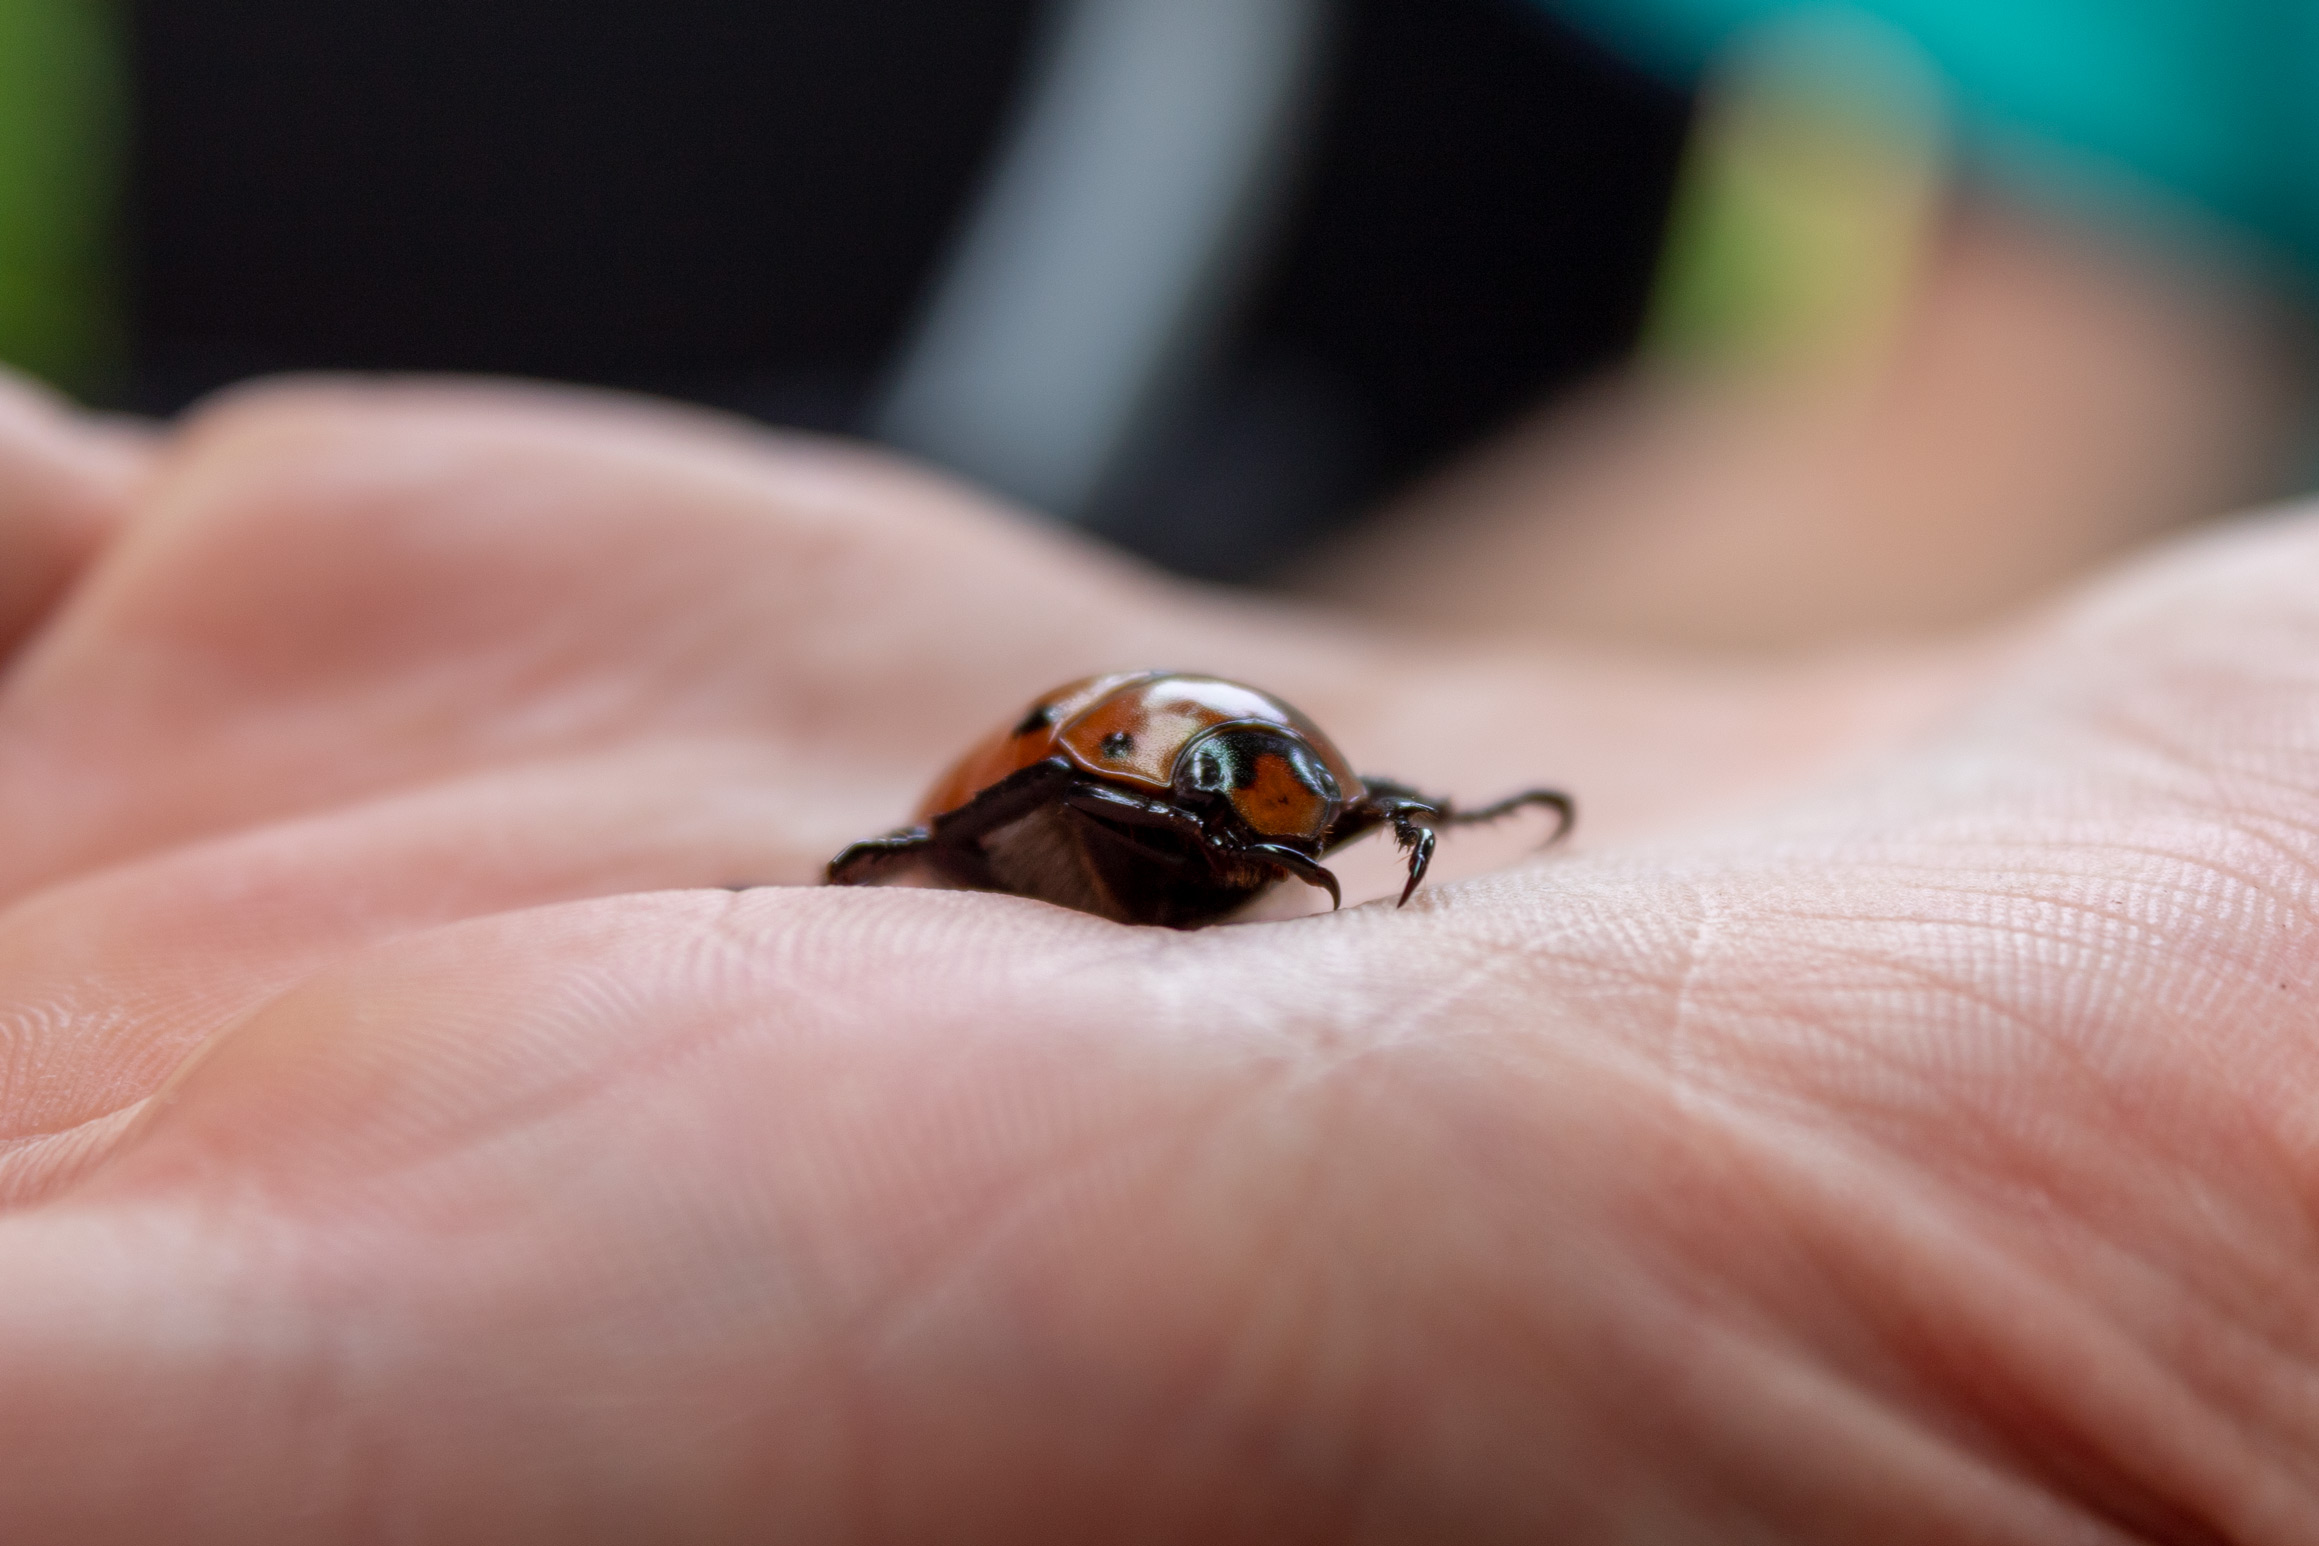 Large orange beetle with black spots sitting on an open hand viewed from the side